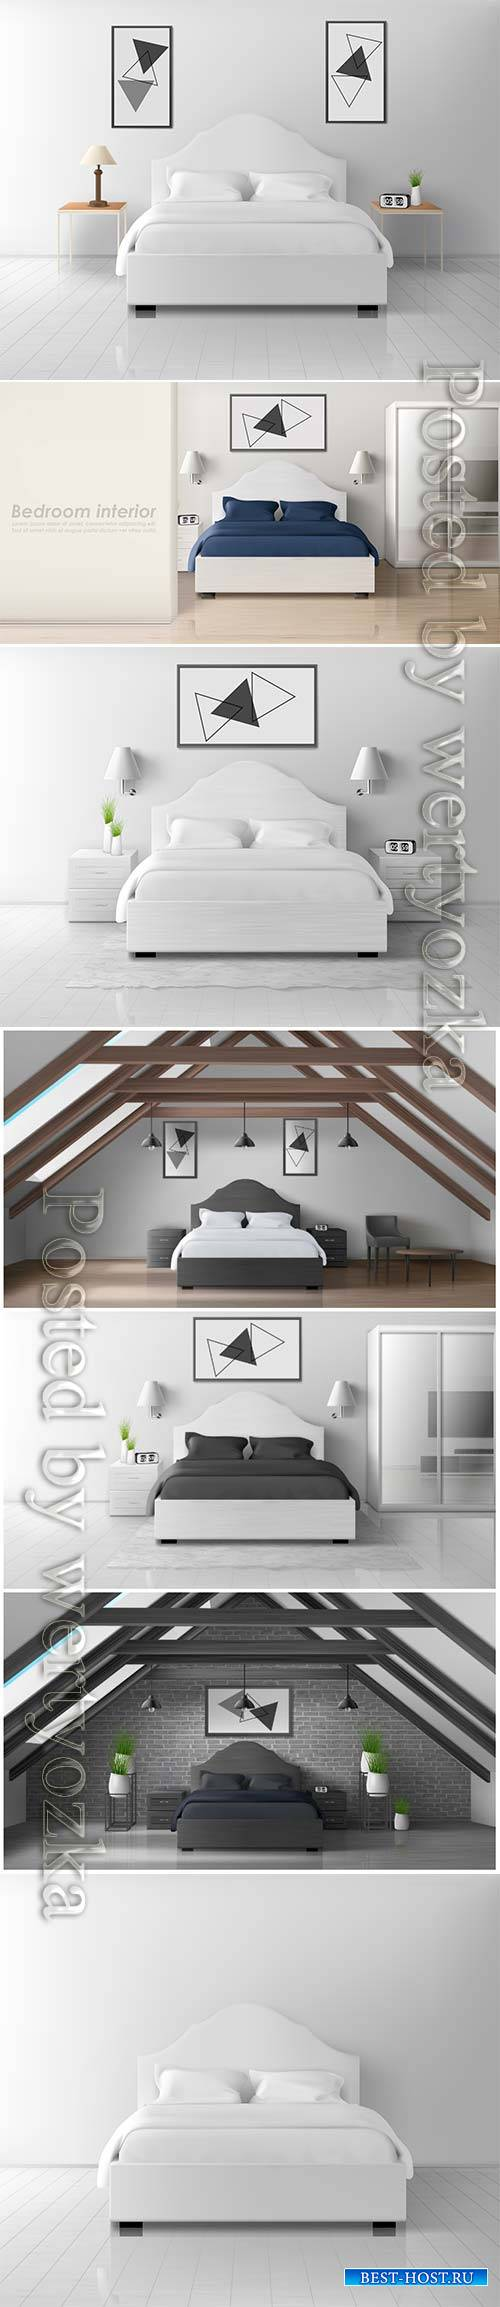 Modern interior in black and white style